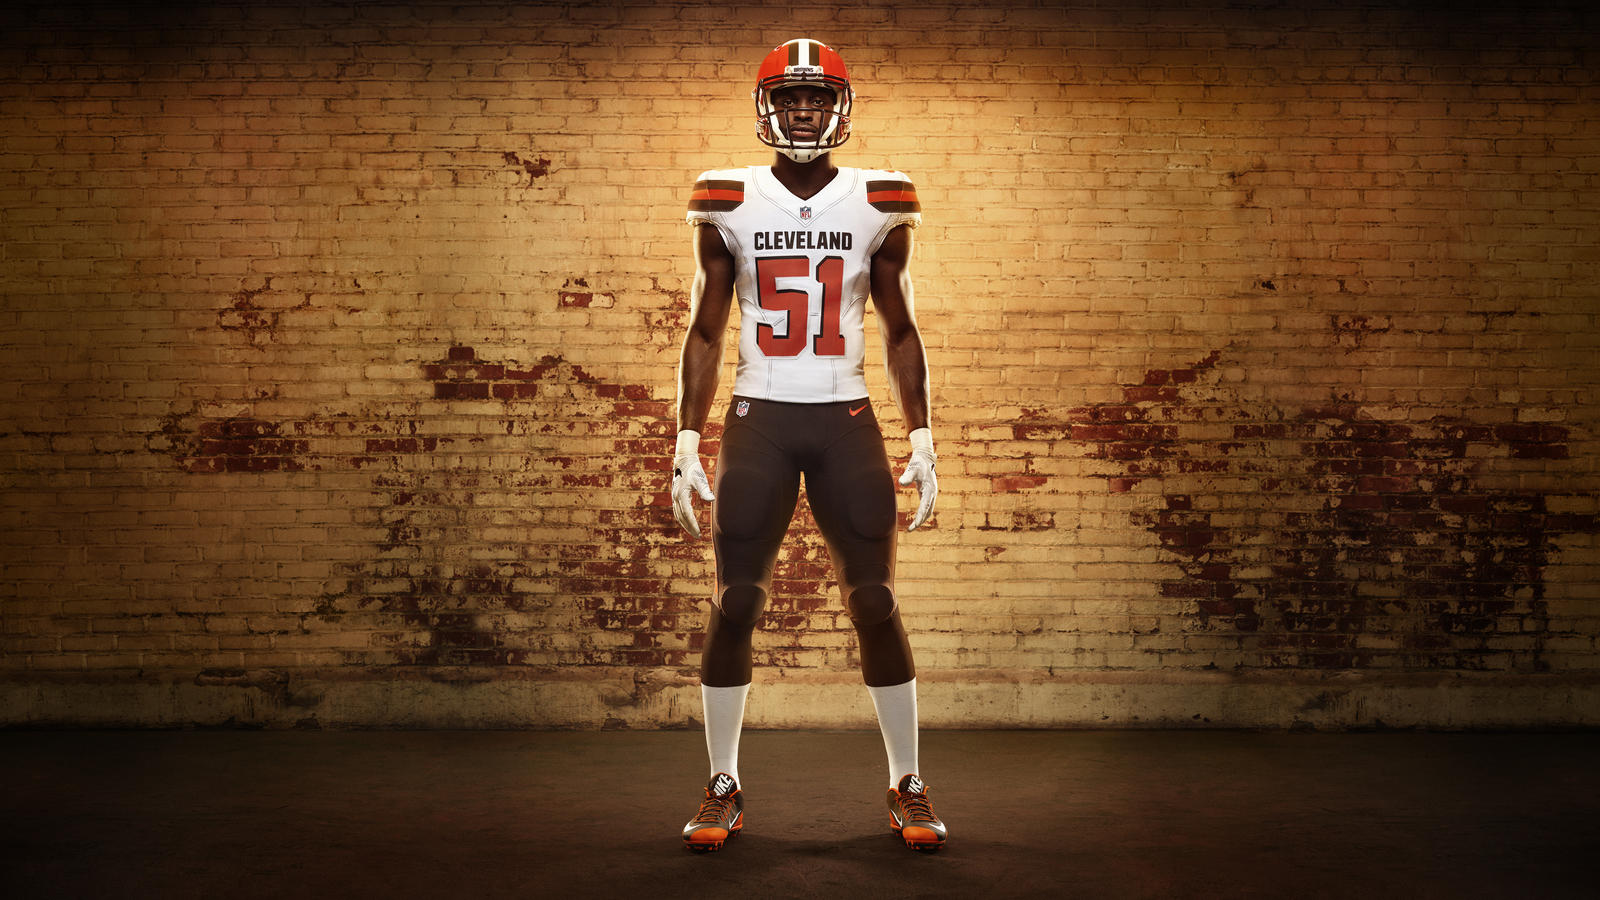 45626_268352_01a_Nike_FB_Cleveland_Barkevious_Mingo_Soldiers_0089_16X9